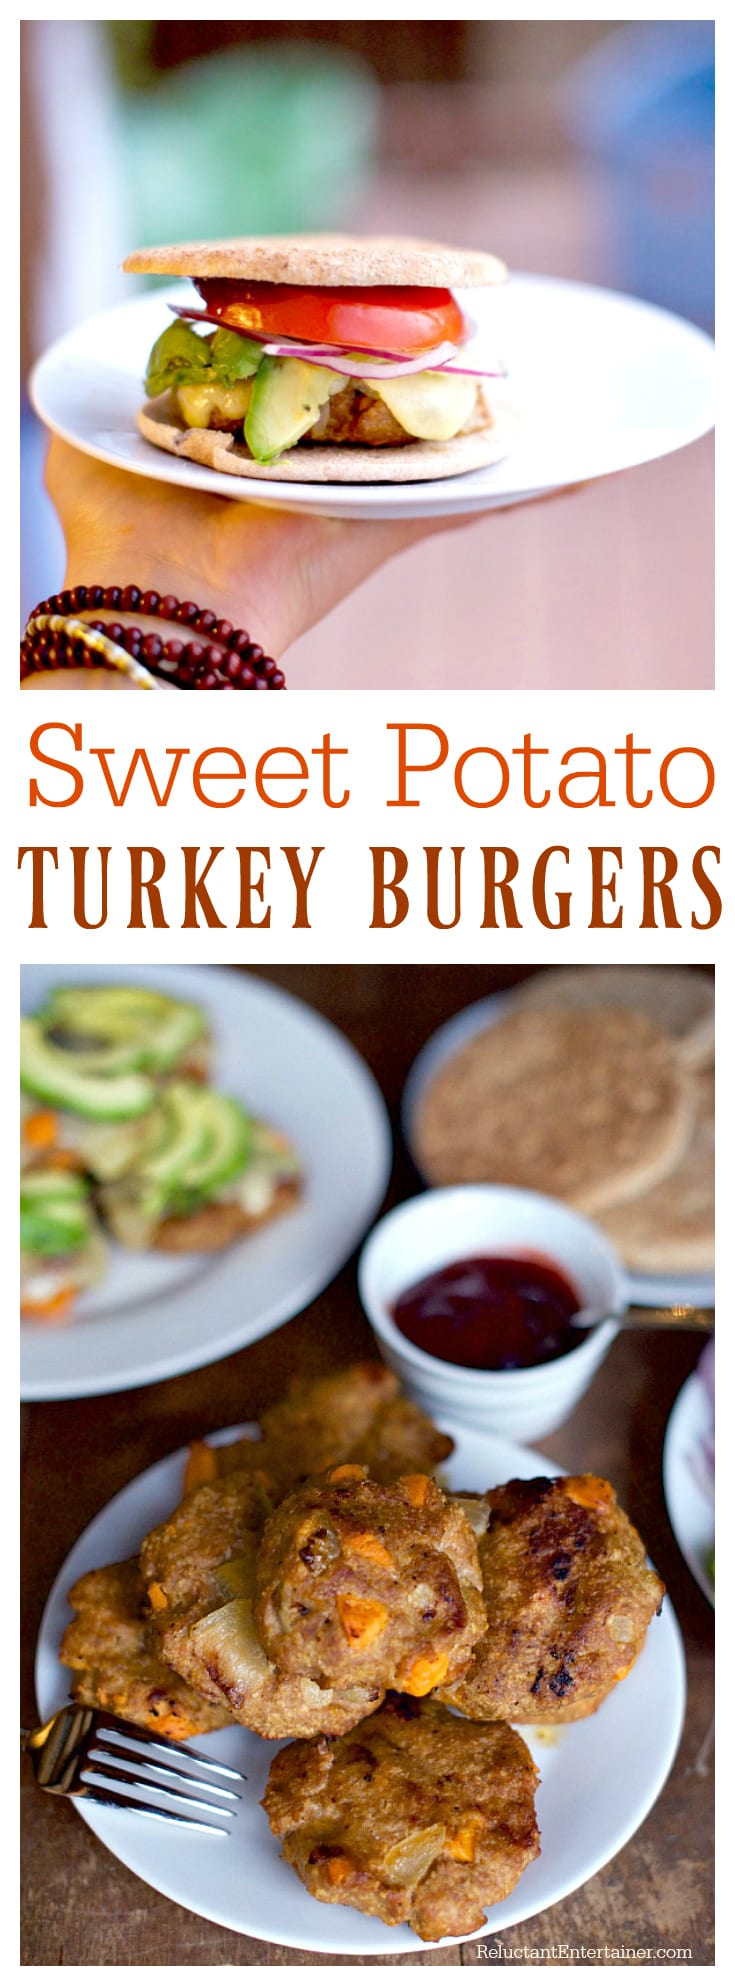 Sweet Potato Turkey Burgers at ReluctantEntertainer.com